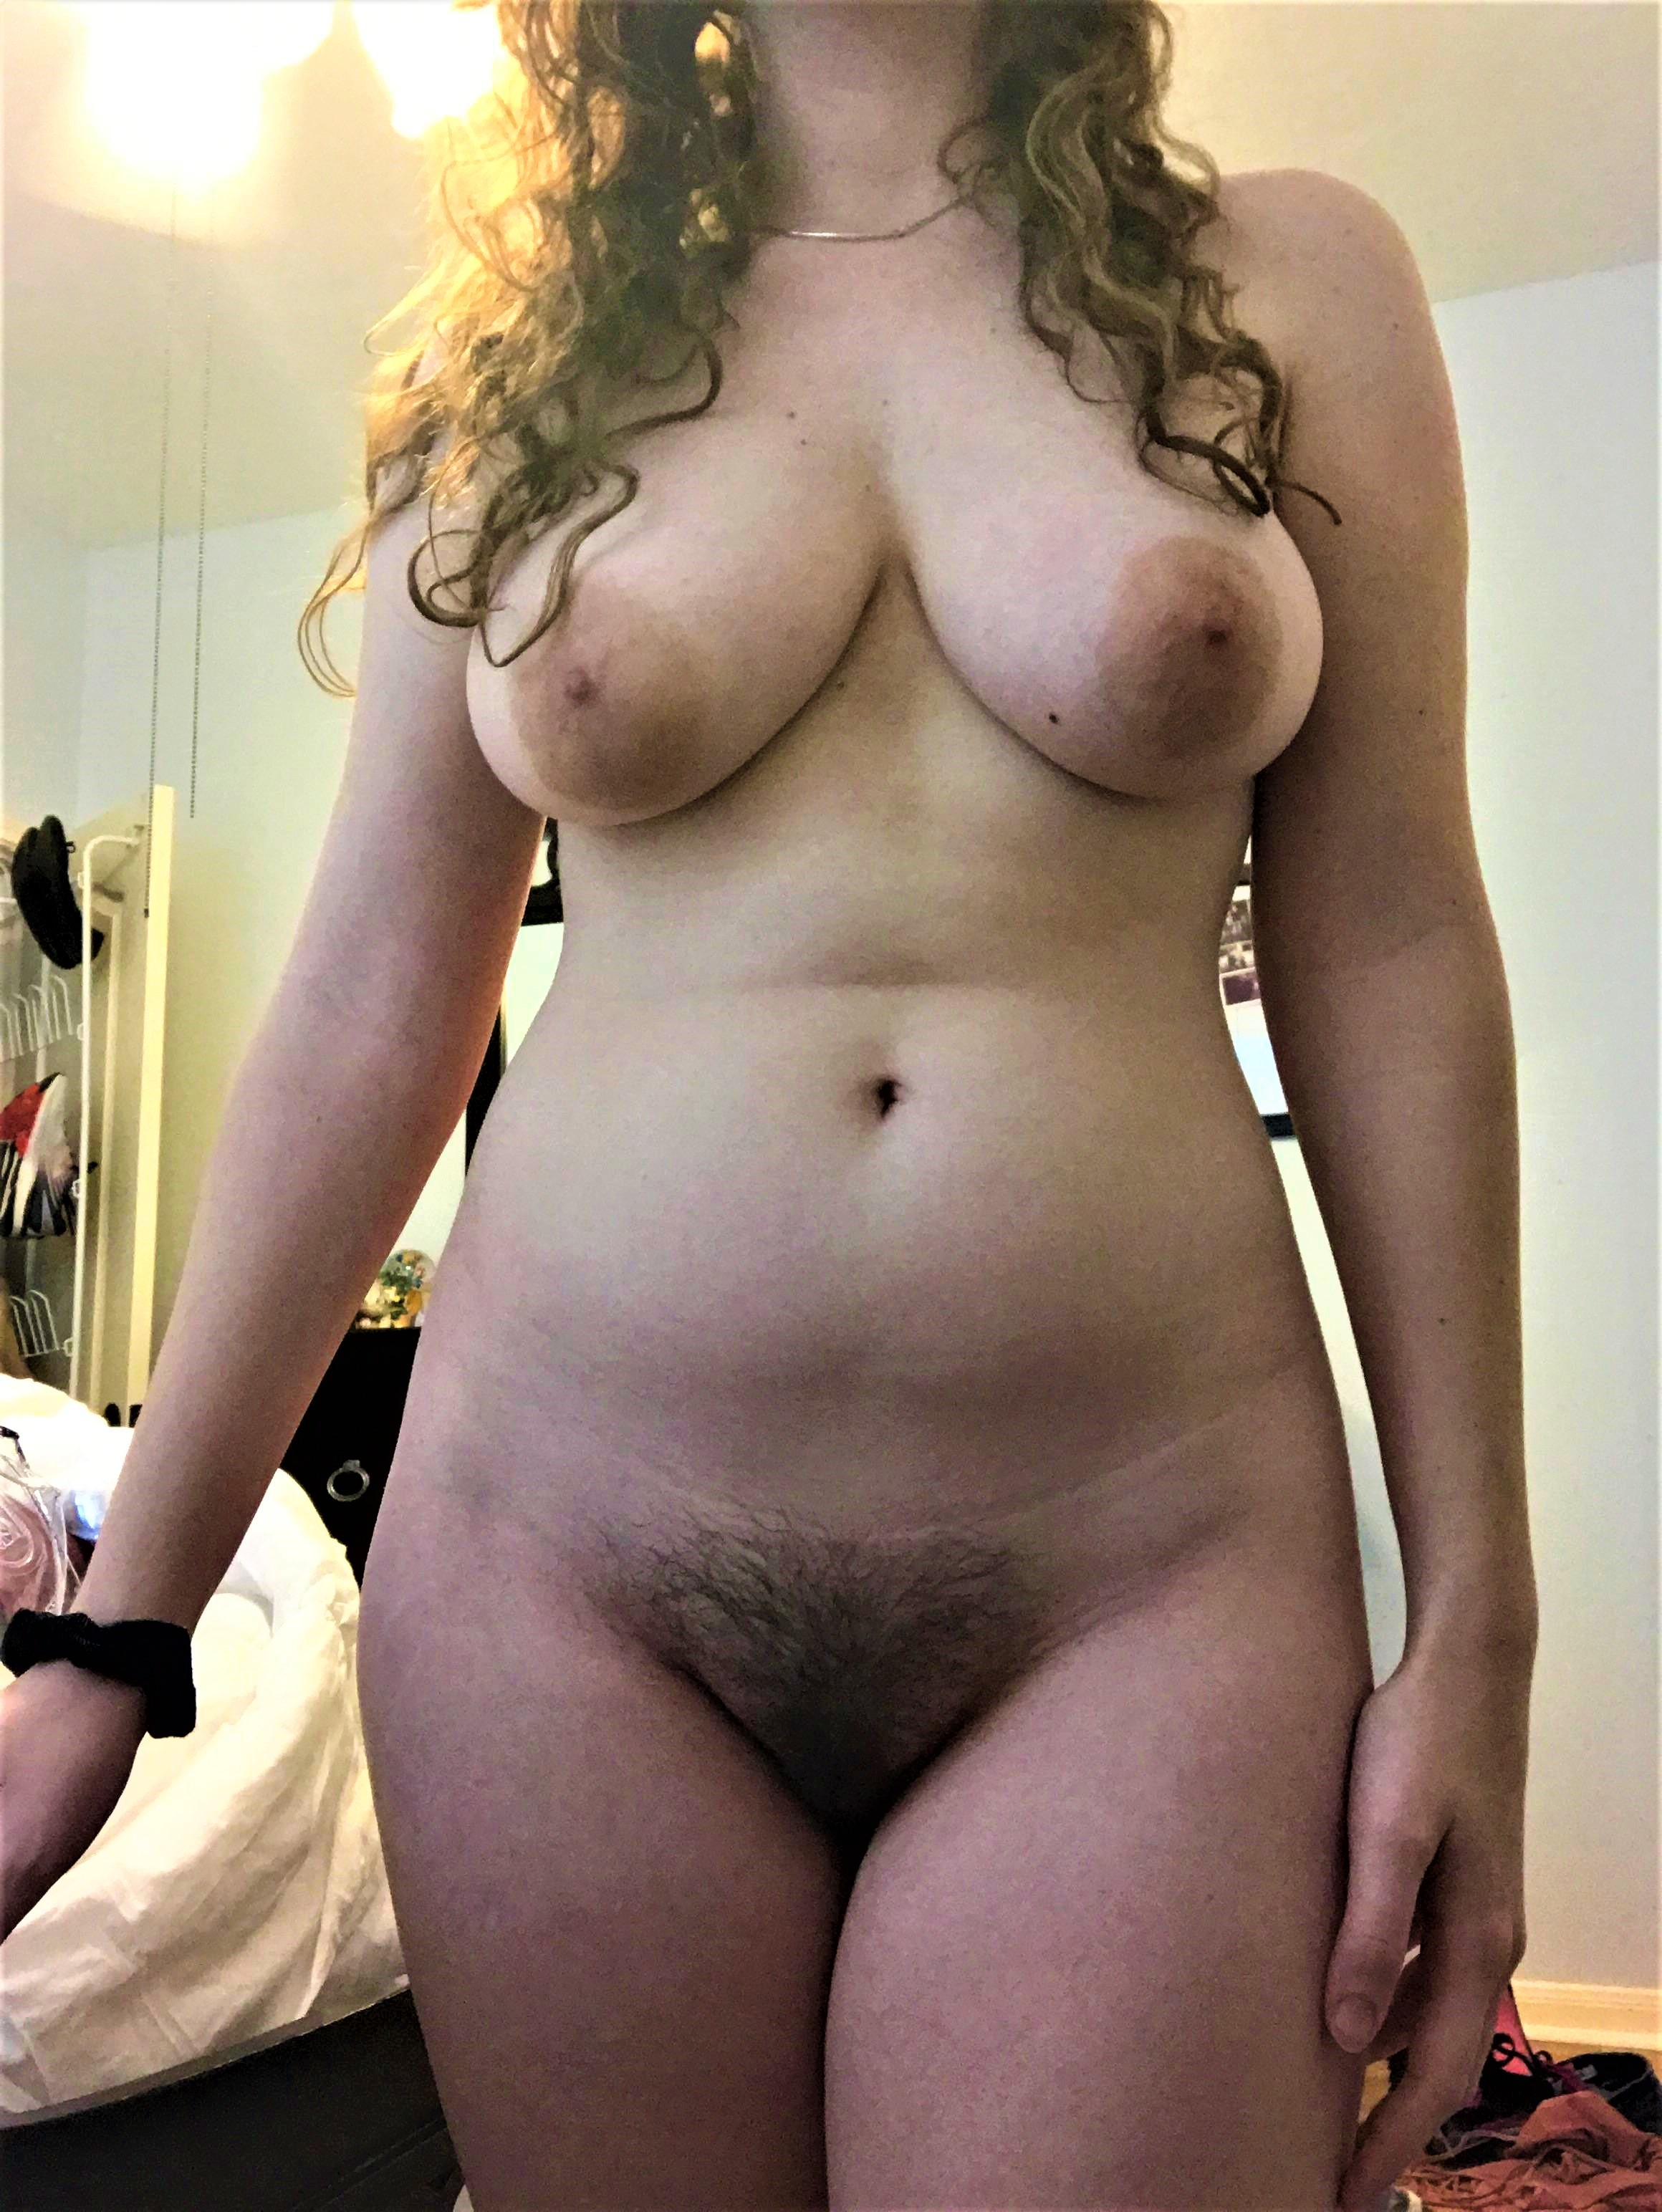 girl rides sleeping guy videos free porn videos #amateur #bigboobs #bignaturals #bush #bush #busty #curvy #firmtits #hairypussy #hairypussy #naked #nakedamateur #nicetits #selfie #selfshot #sexybody #slimandbusty